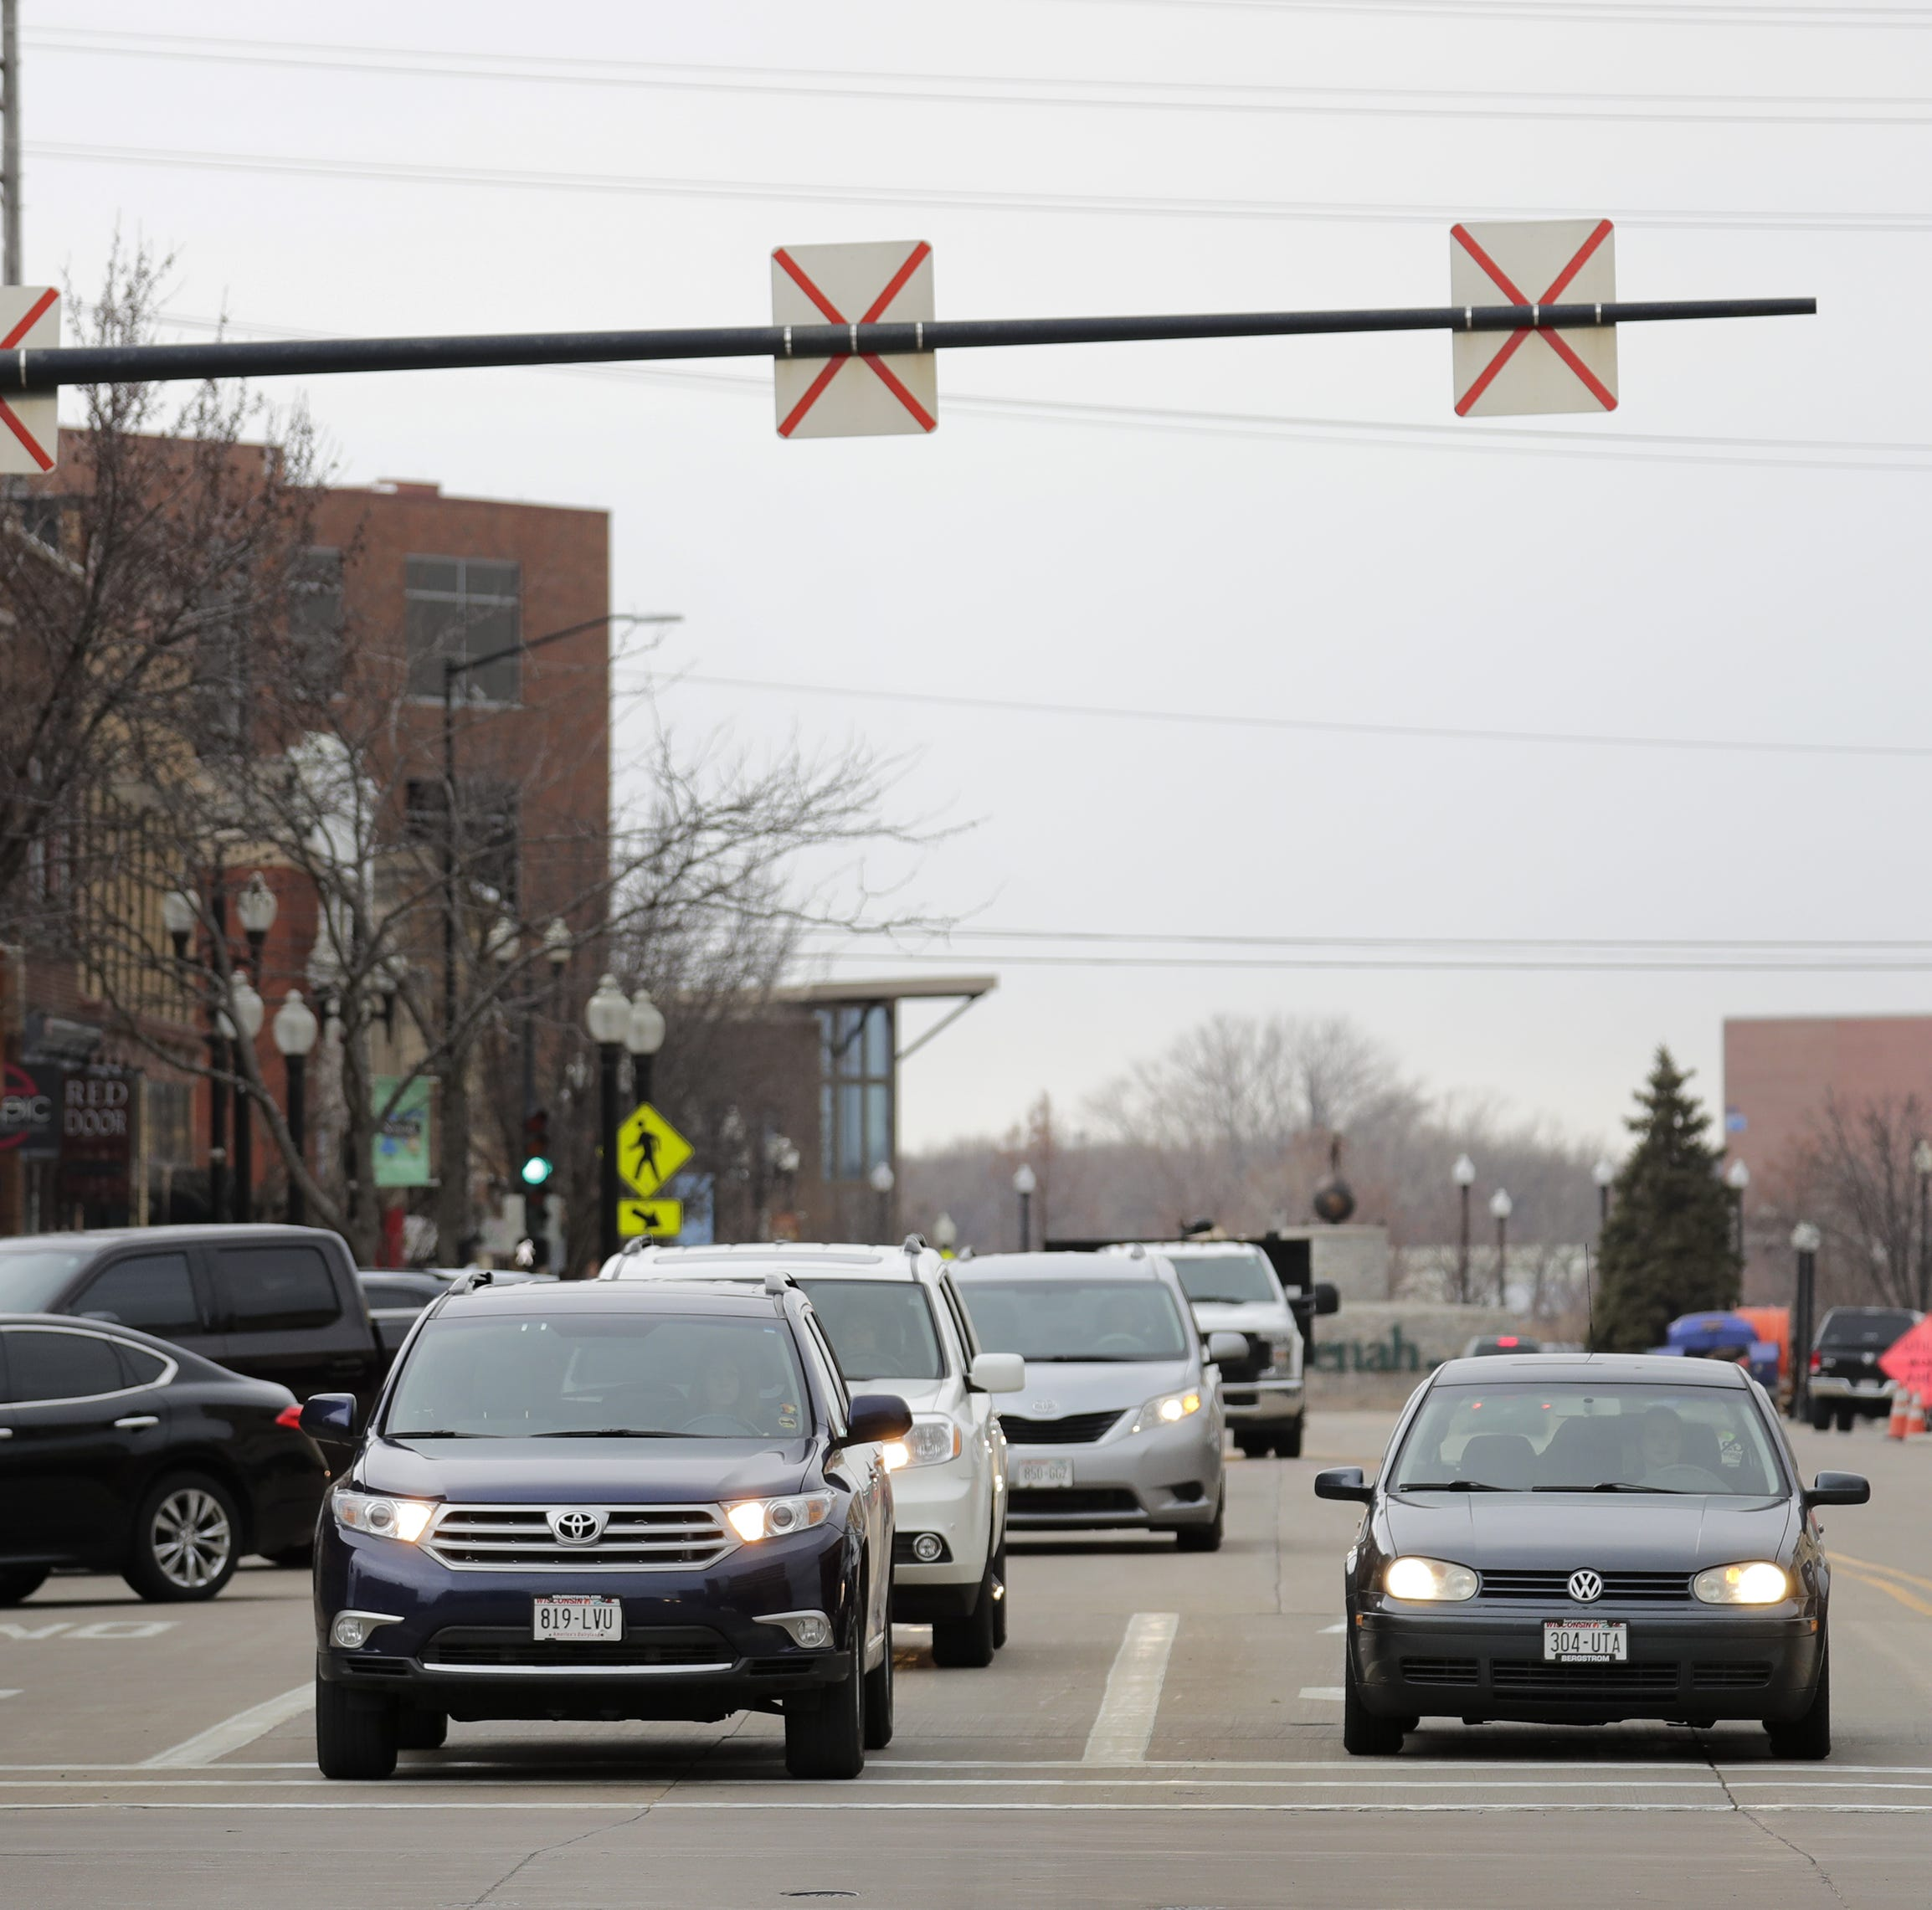 Employment growth in downtown Neenah contributes to traffic, parking issues